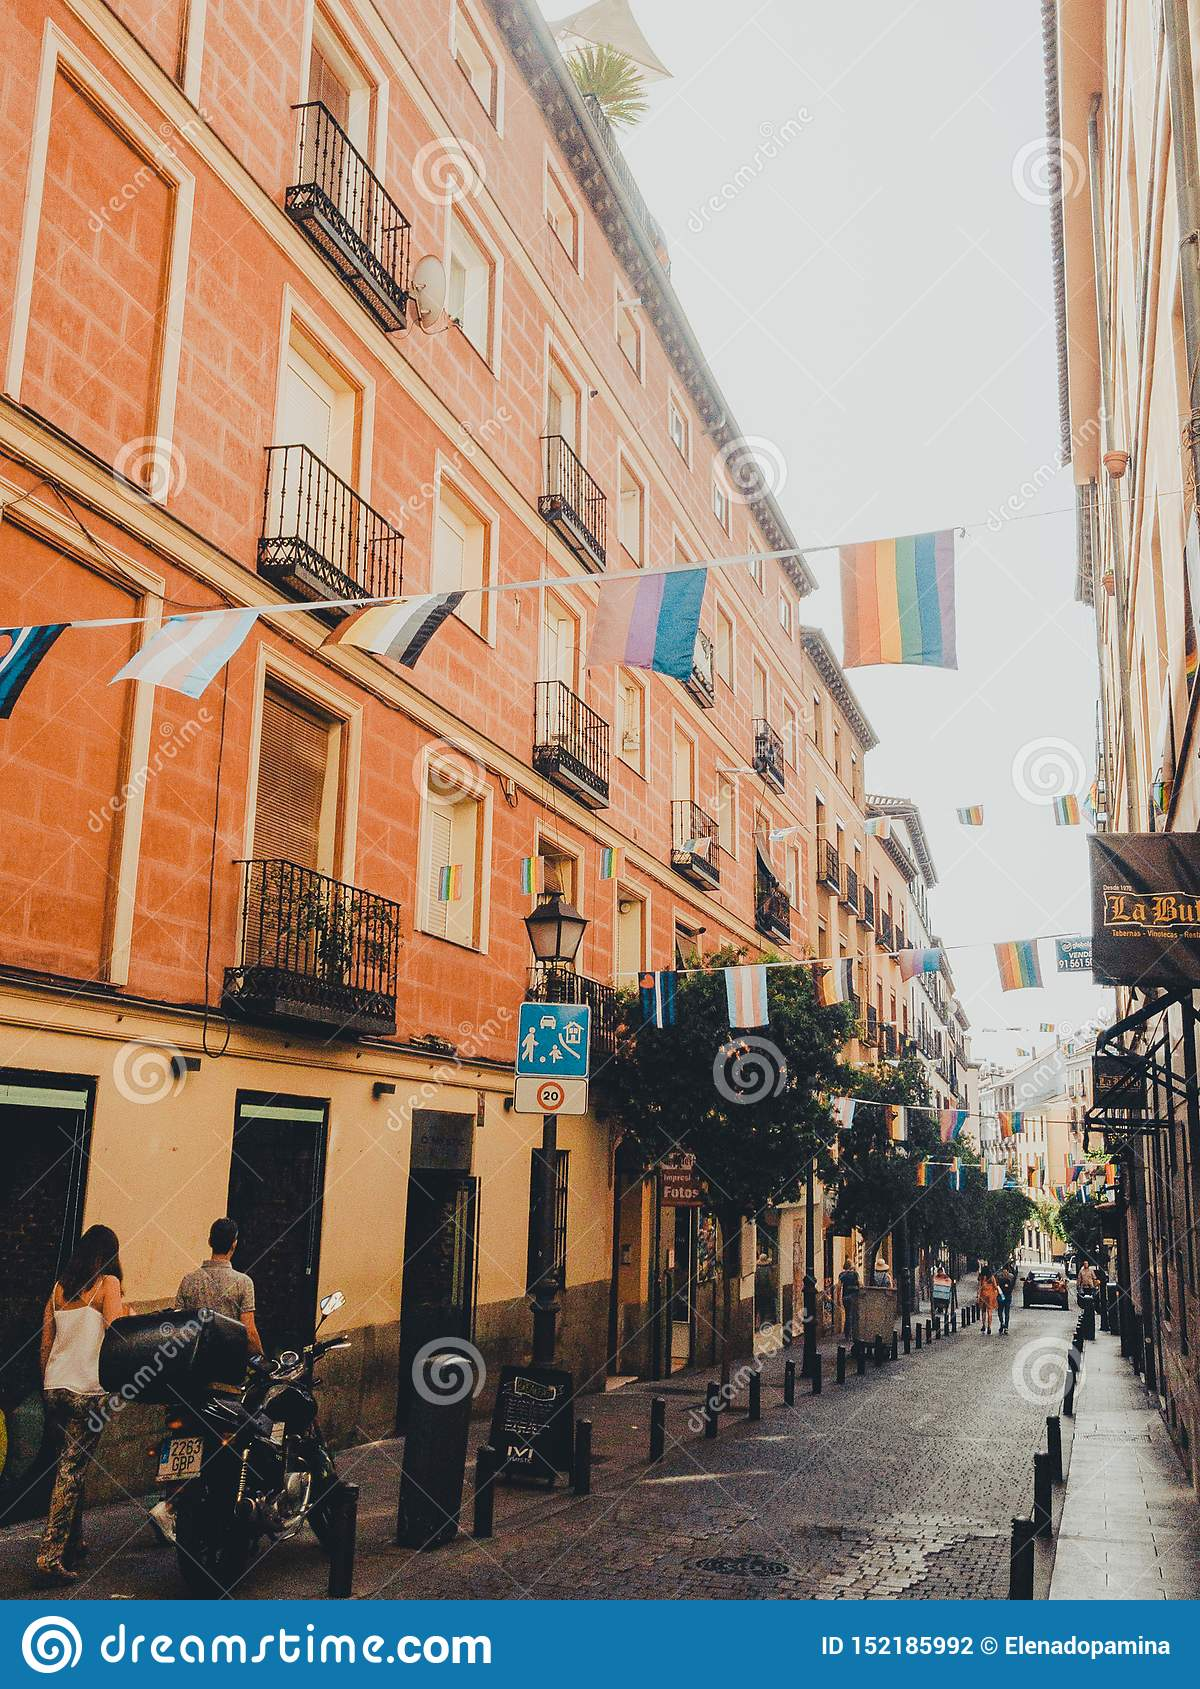 CHUECA,MADRID, SPAIN - JUNE 28, 2019: The streets of the city of Madrid are preparing to receive the gay pride 2019MADRID, SPAIN